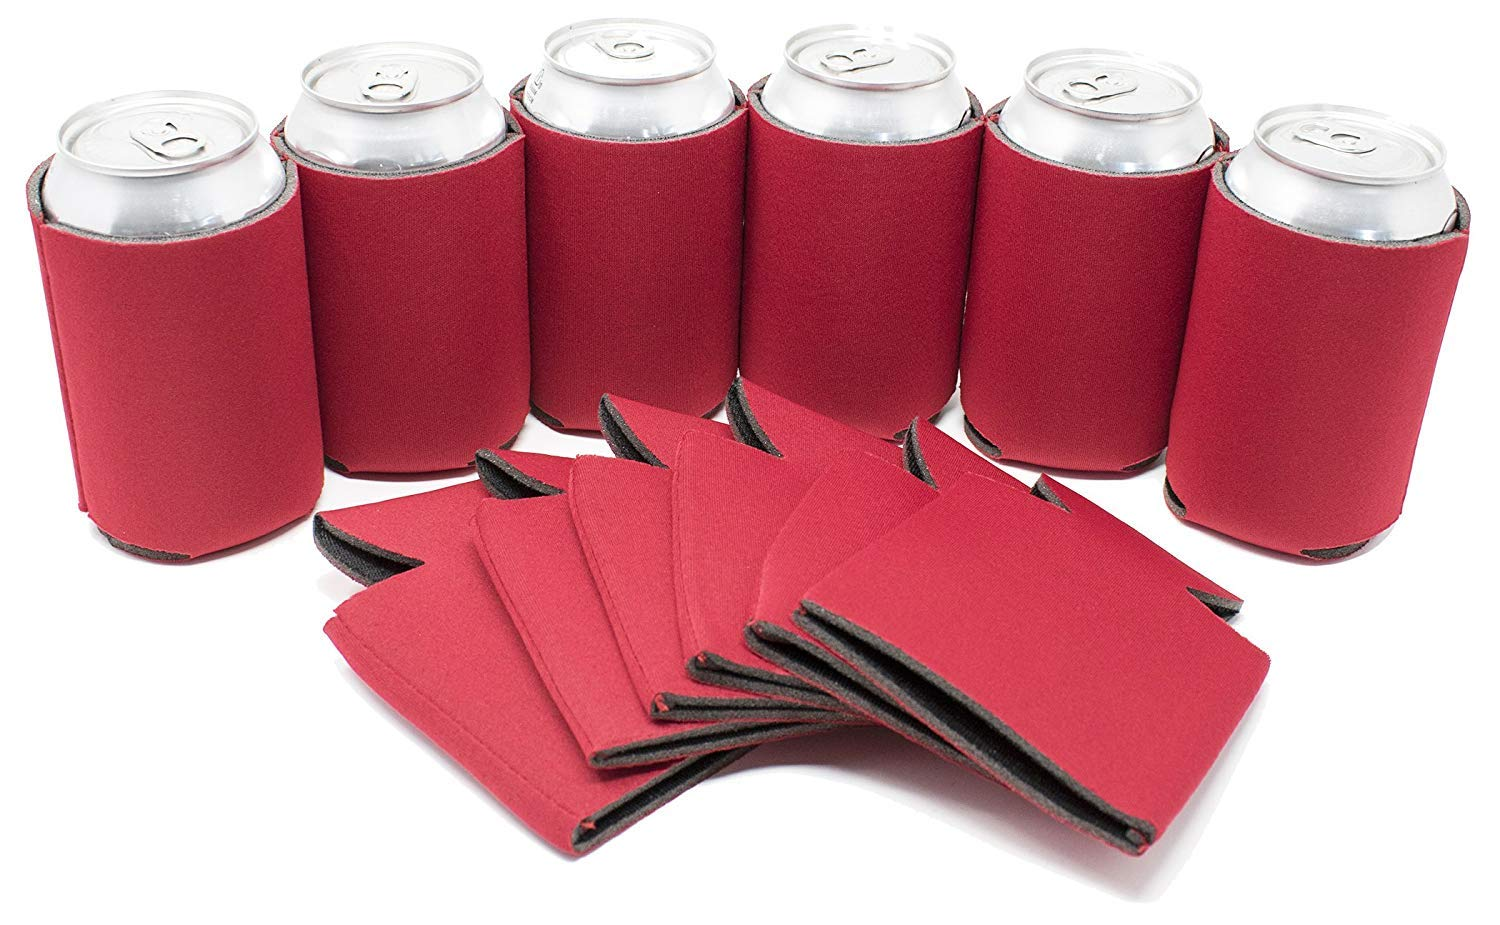 TahoeBay 25 Blank Beer Can Coolers, Plain Bulk Collapsible Soda Cover Coolies, DIY Personalized Sublimation Sleeves for Weddings, Bachelorette Parties, Funny HTV Party Favors (Red, 25)